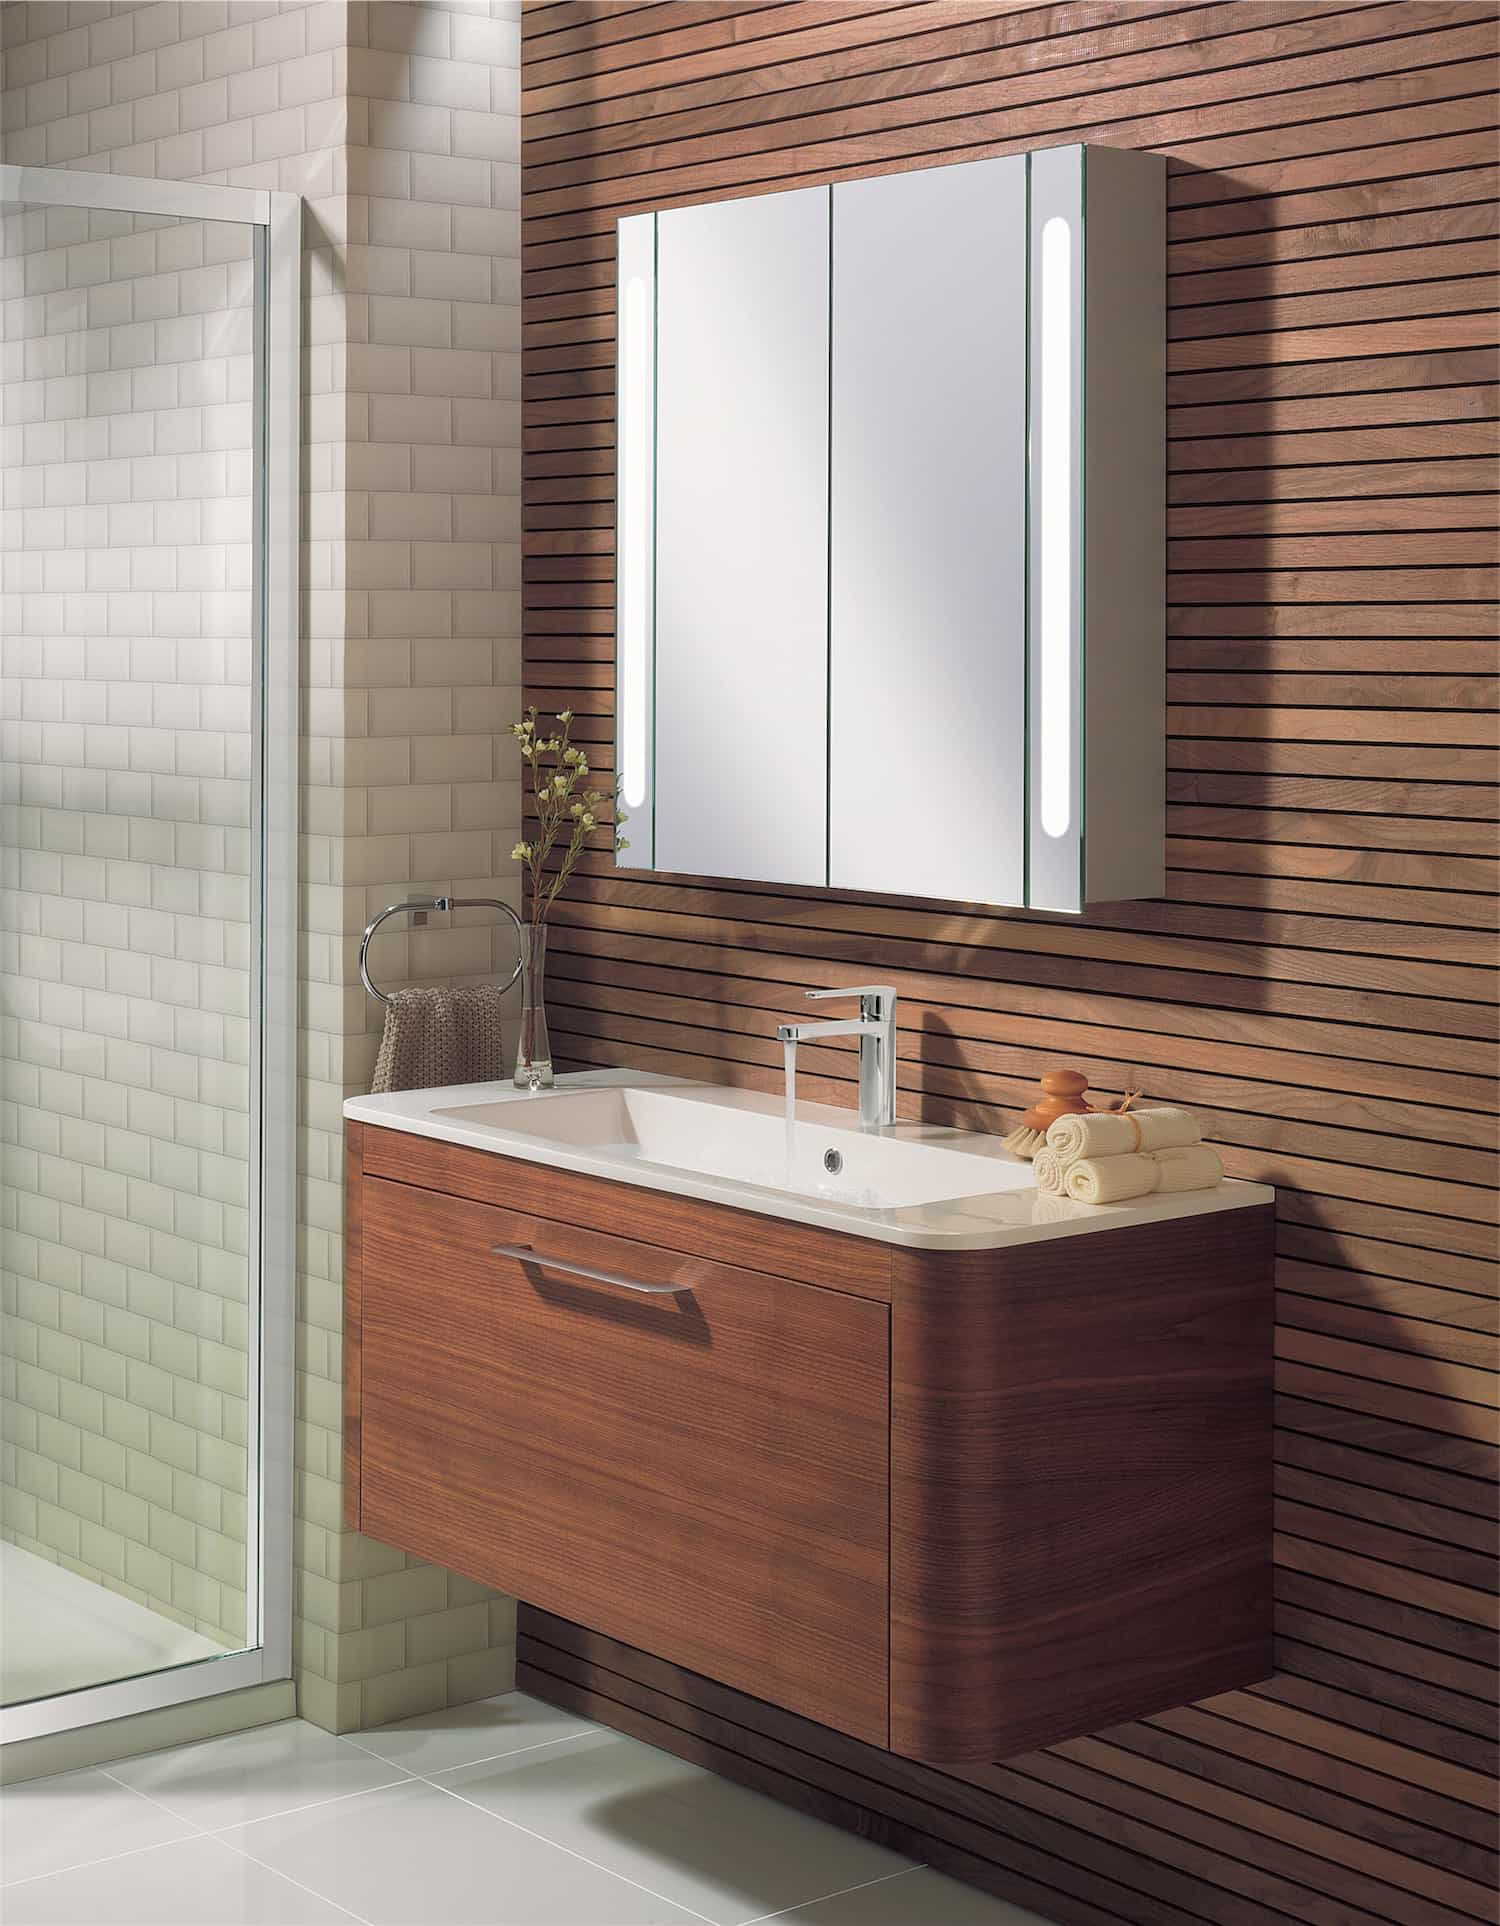 Illuminated Bathroom Mirrors With Storage Cabinet (Image 5 of 8)